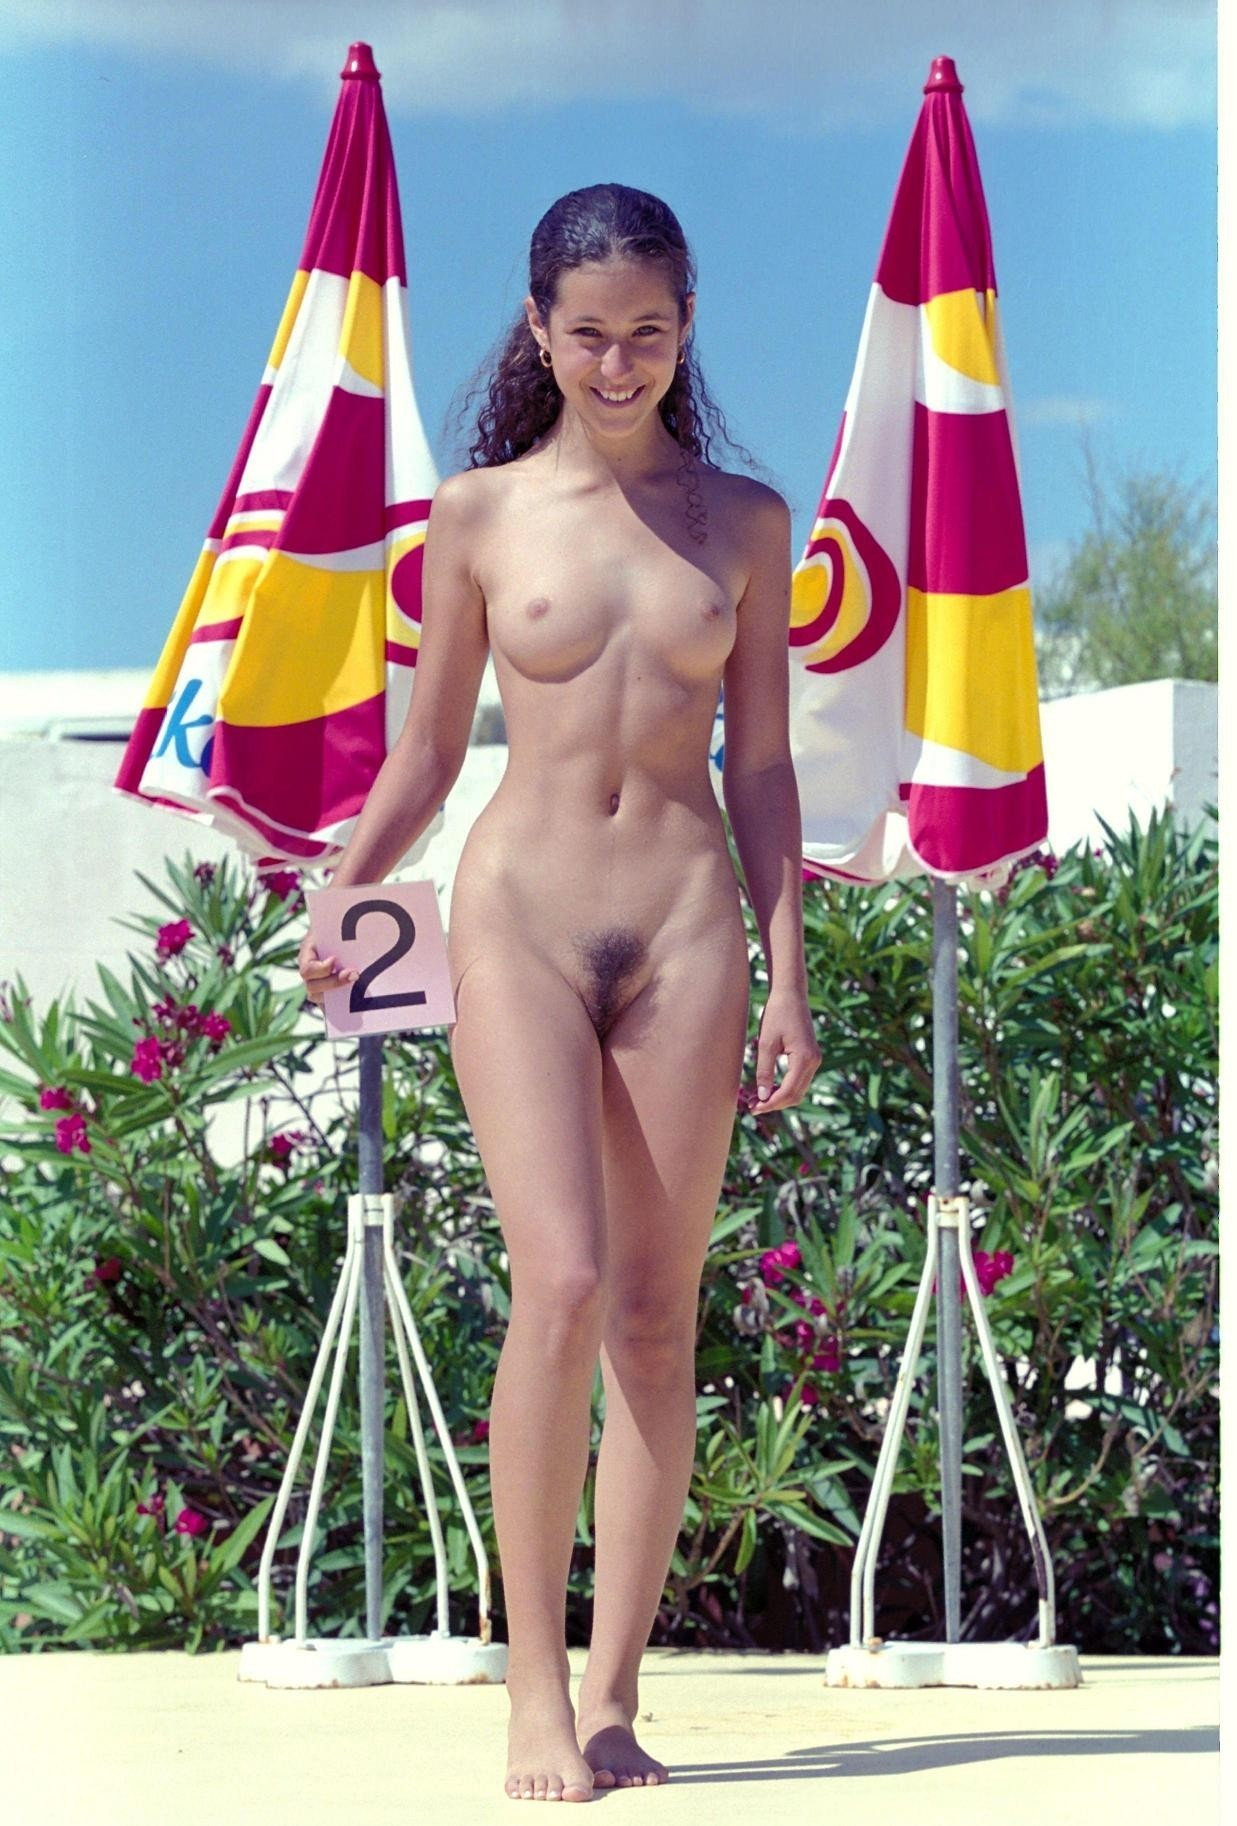 Miss Nudist 113